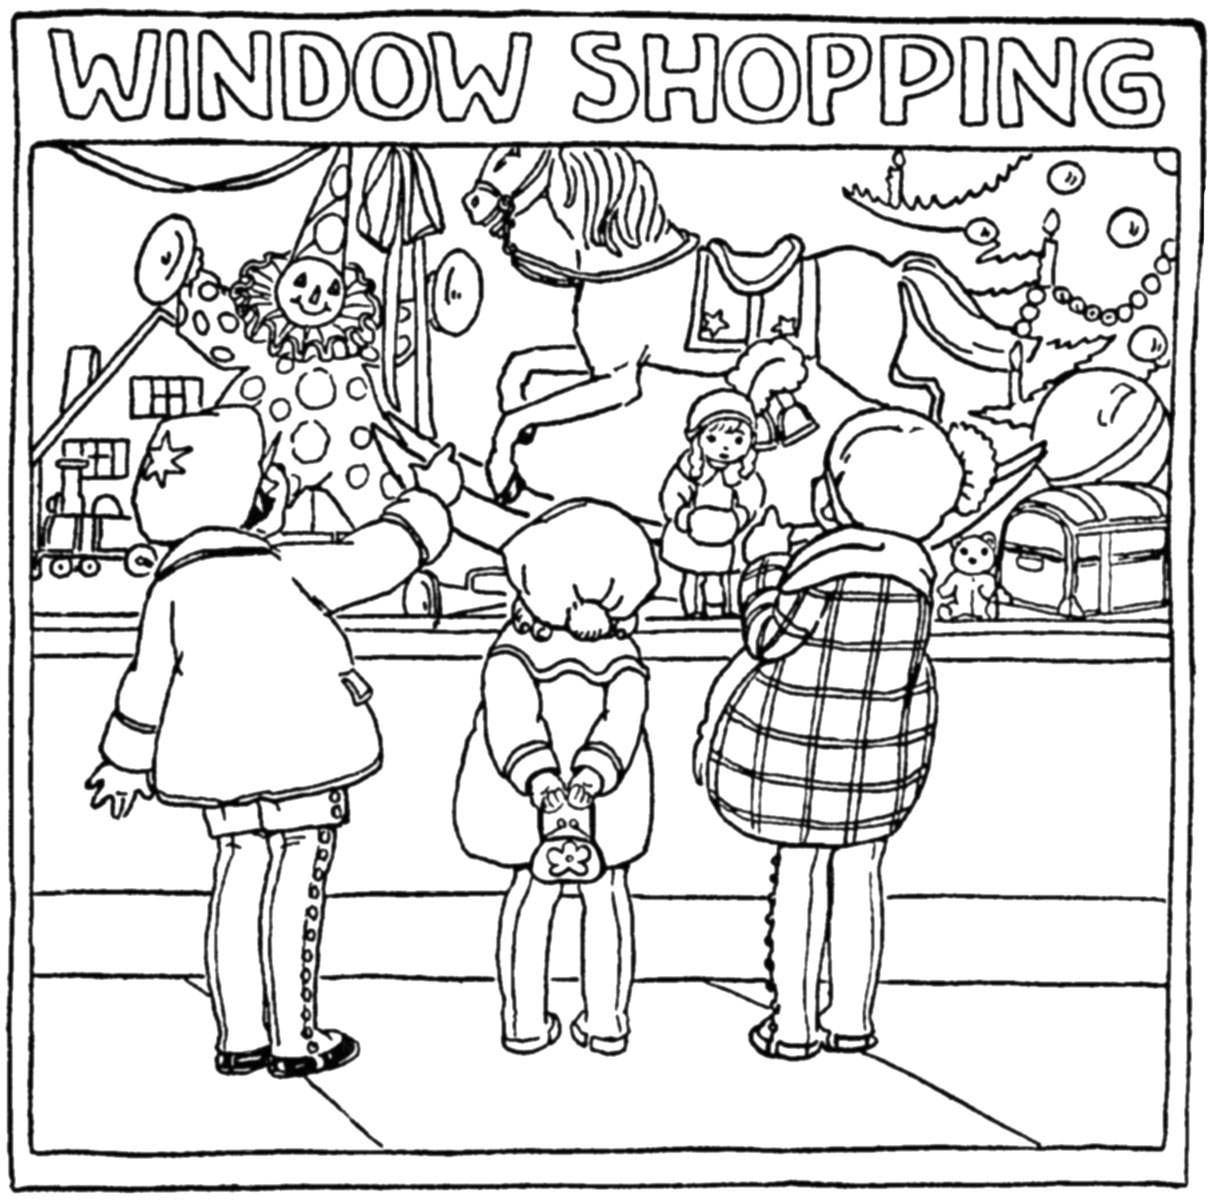 Window-Shopping